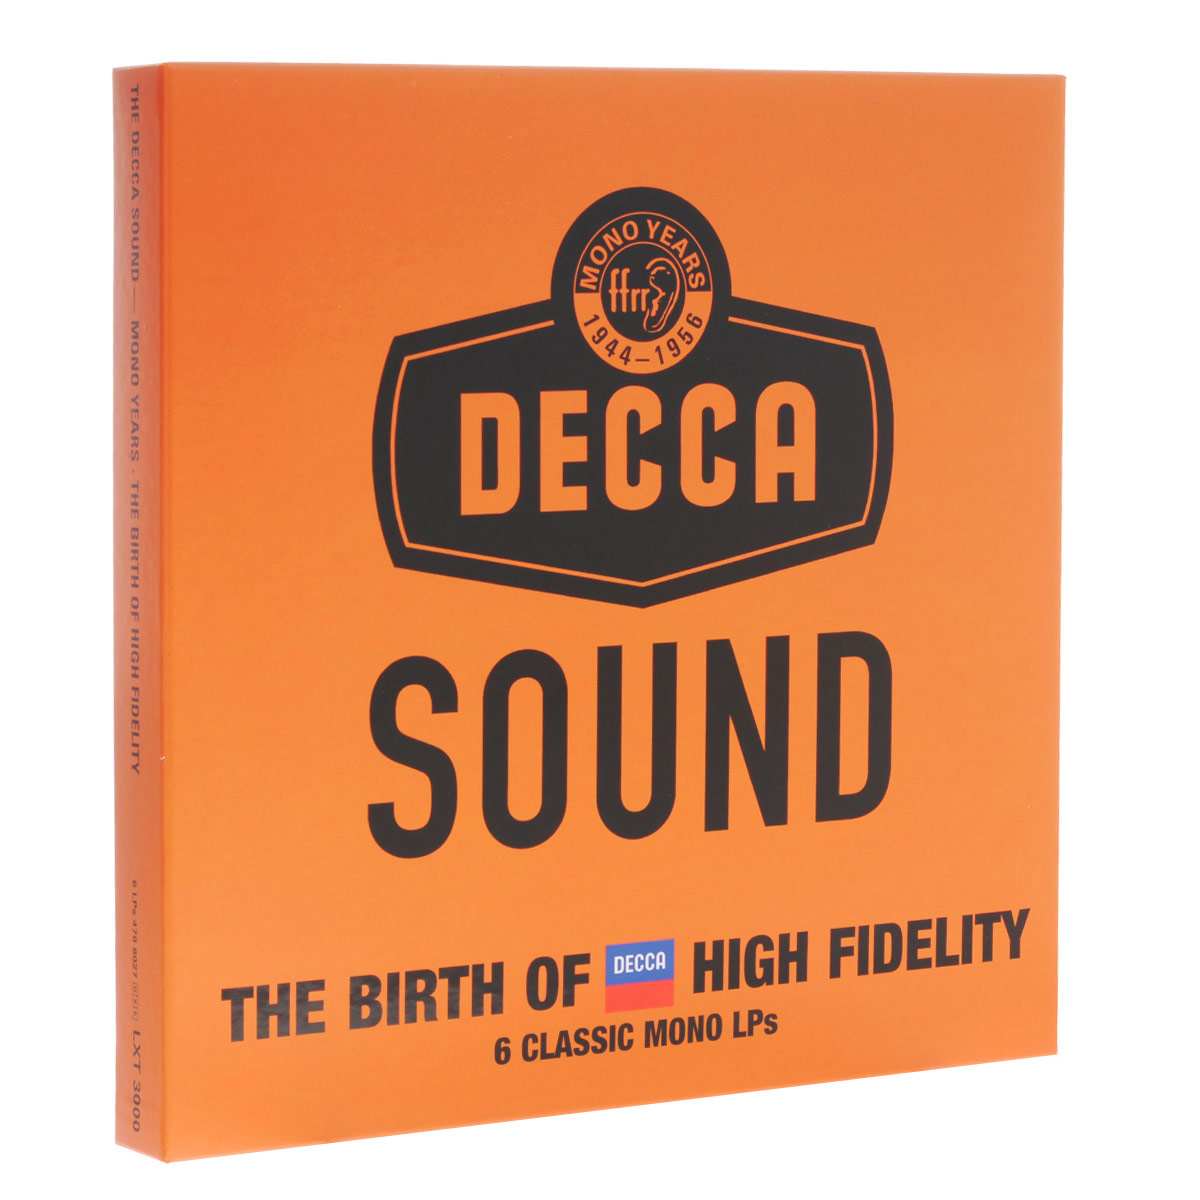 This limited-edition LP set features six outstanding recordings from Decca's earliest high fidelity history, celebrating the technological breakthroughs that brought full-frequency range recording (ffrr) and high fidelity to the world 70 years ago. The recordings in this set, including Decca's first LP (Ansermet's 1949 recording of Petrouchka), have been selected from a collection of celebrated recordings in the 53-CD set of THE DECCA SOUND - MONO YEARS. Newly presented in luxury 180gm vinyl pressings, the set includes a newly written booklet detailing the history behind the Decca Sound from this period. Limited-Edition, Numbered LP Set with a detailed booklet. Original LP front and back covers.